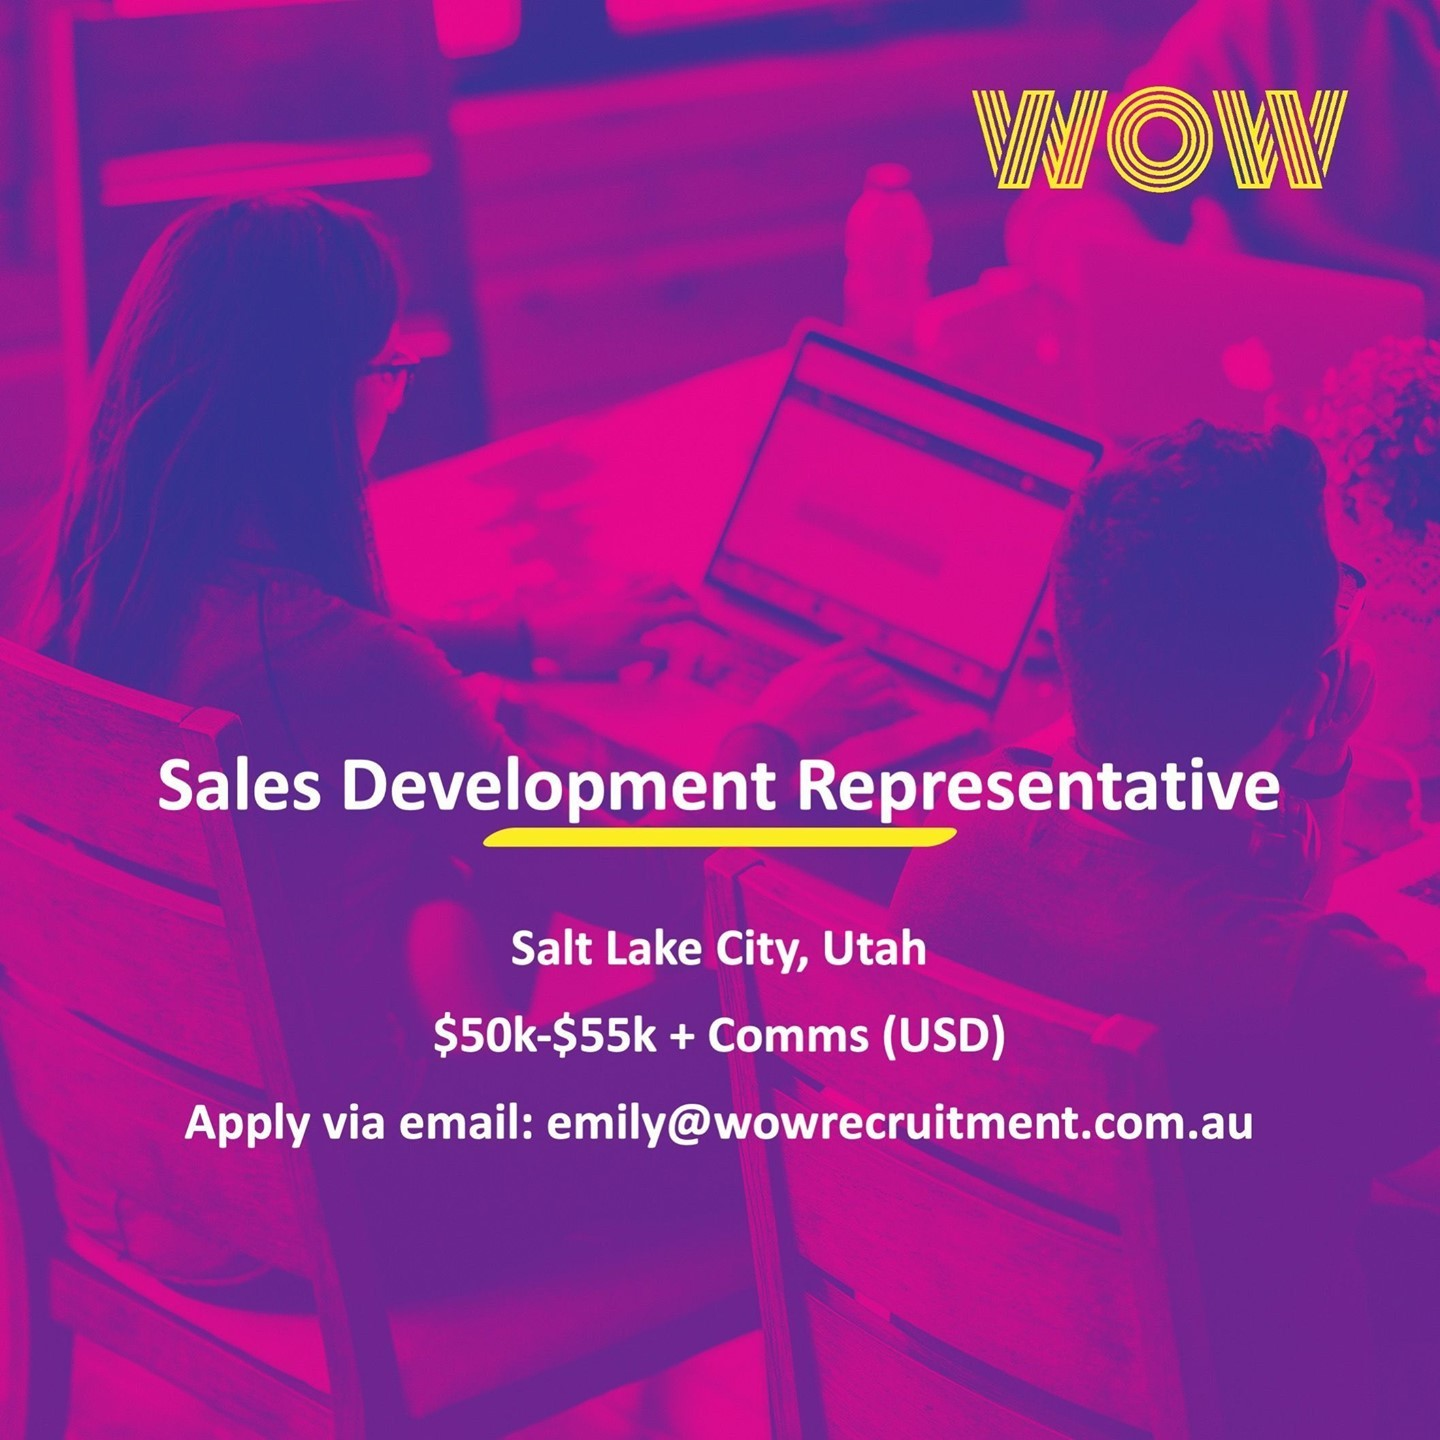 WOW Recruitment are recruiting for an ambitious & results driven Sales Development Representative to contribute to the continuous growth of a Tech/SaaS company in Salt Lake City! Reach out to Emily McLeod via email for more info! #DoWhatYouLove